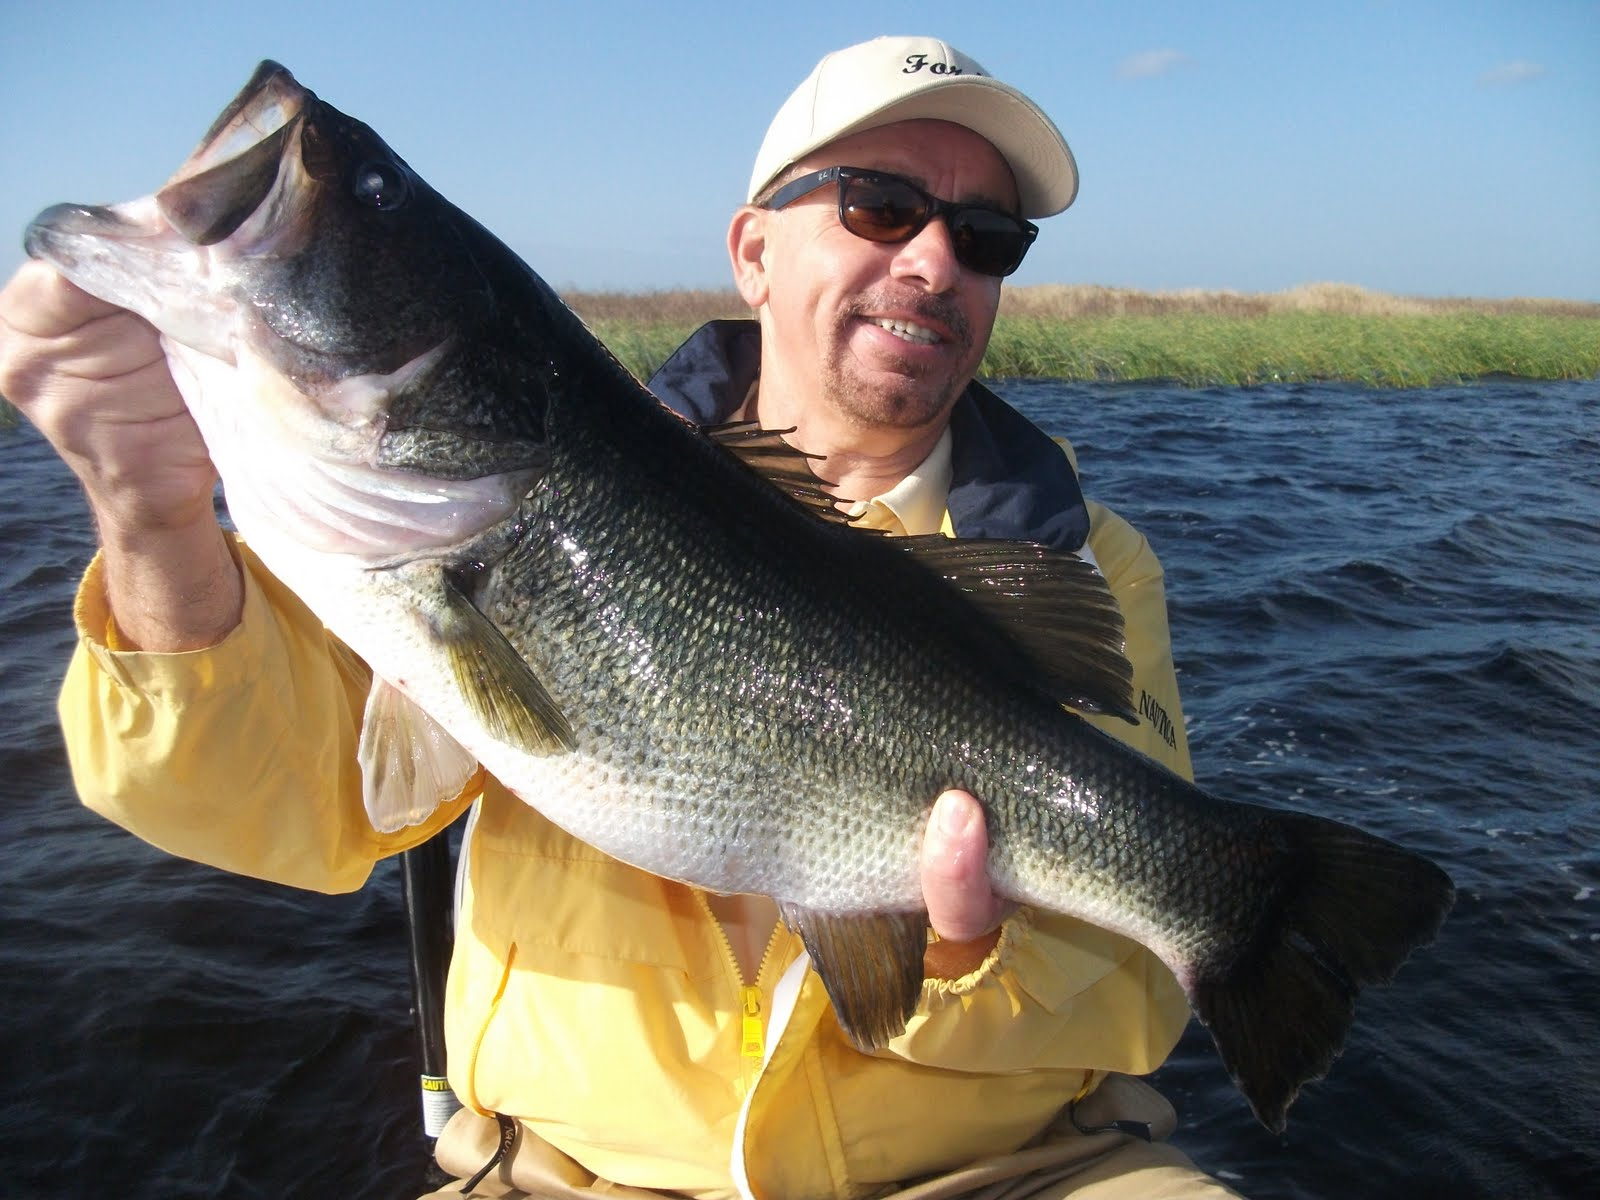 Lake okeechobee fishing report december 2011 great bass for Lake fishing report